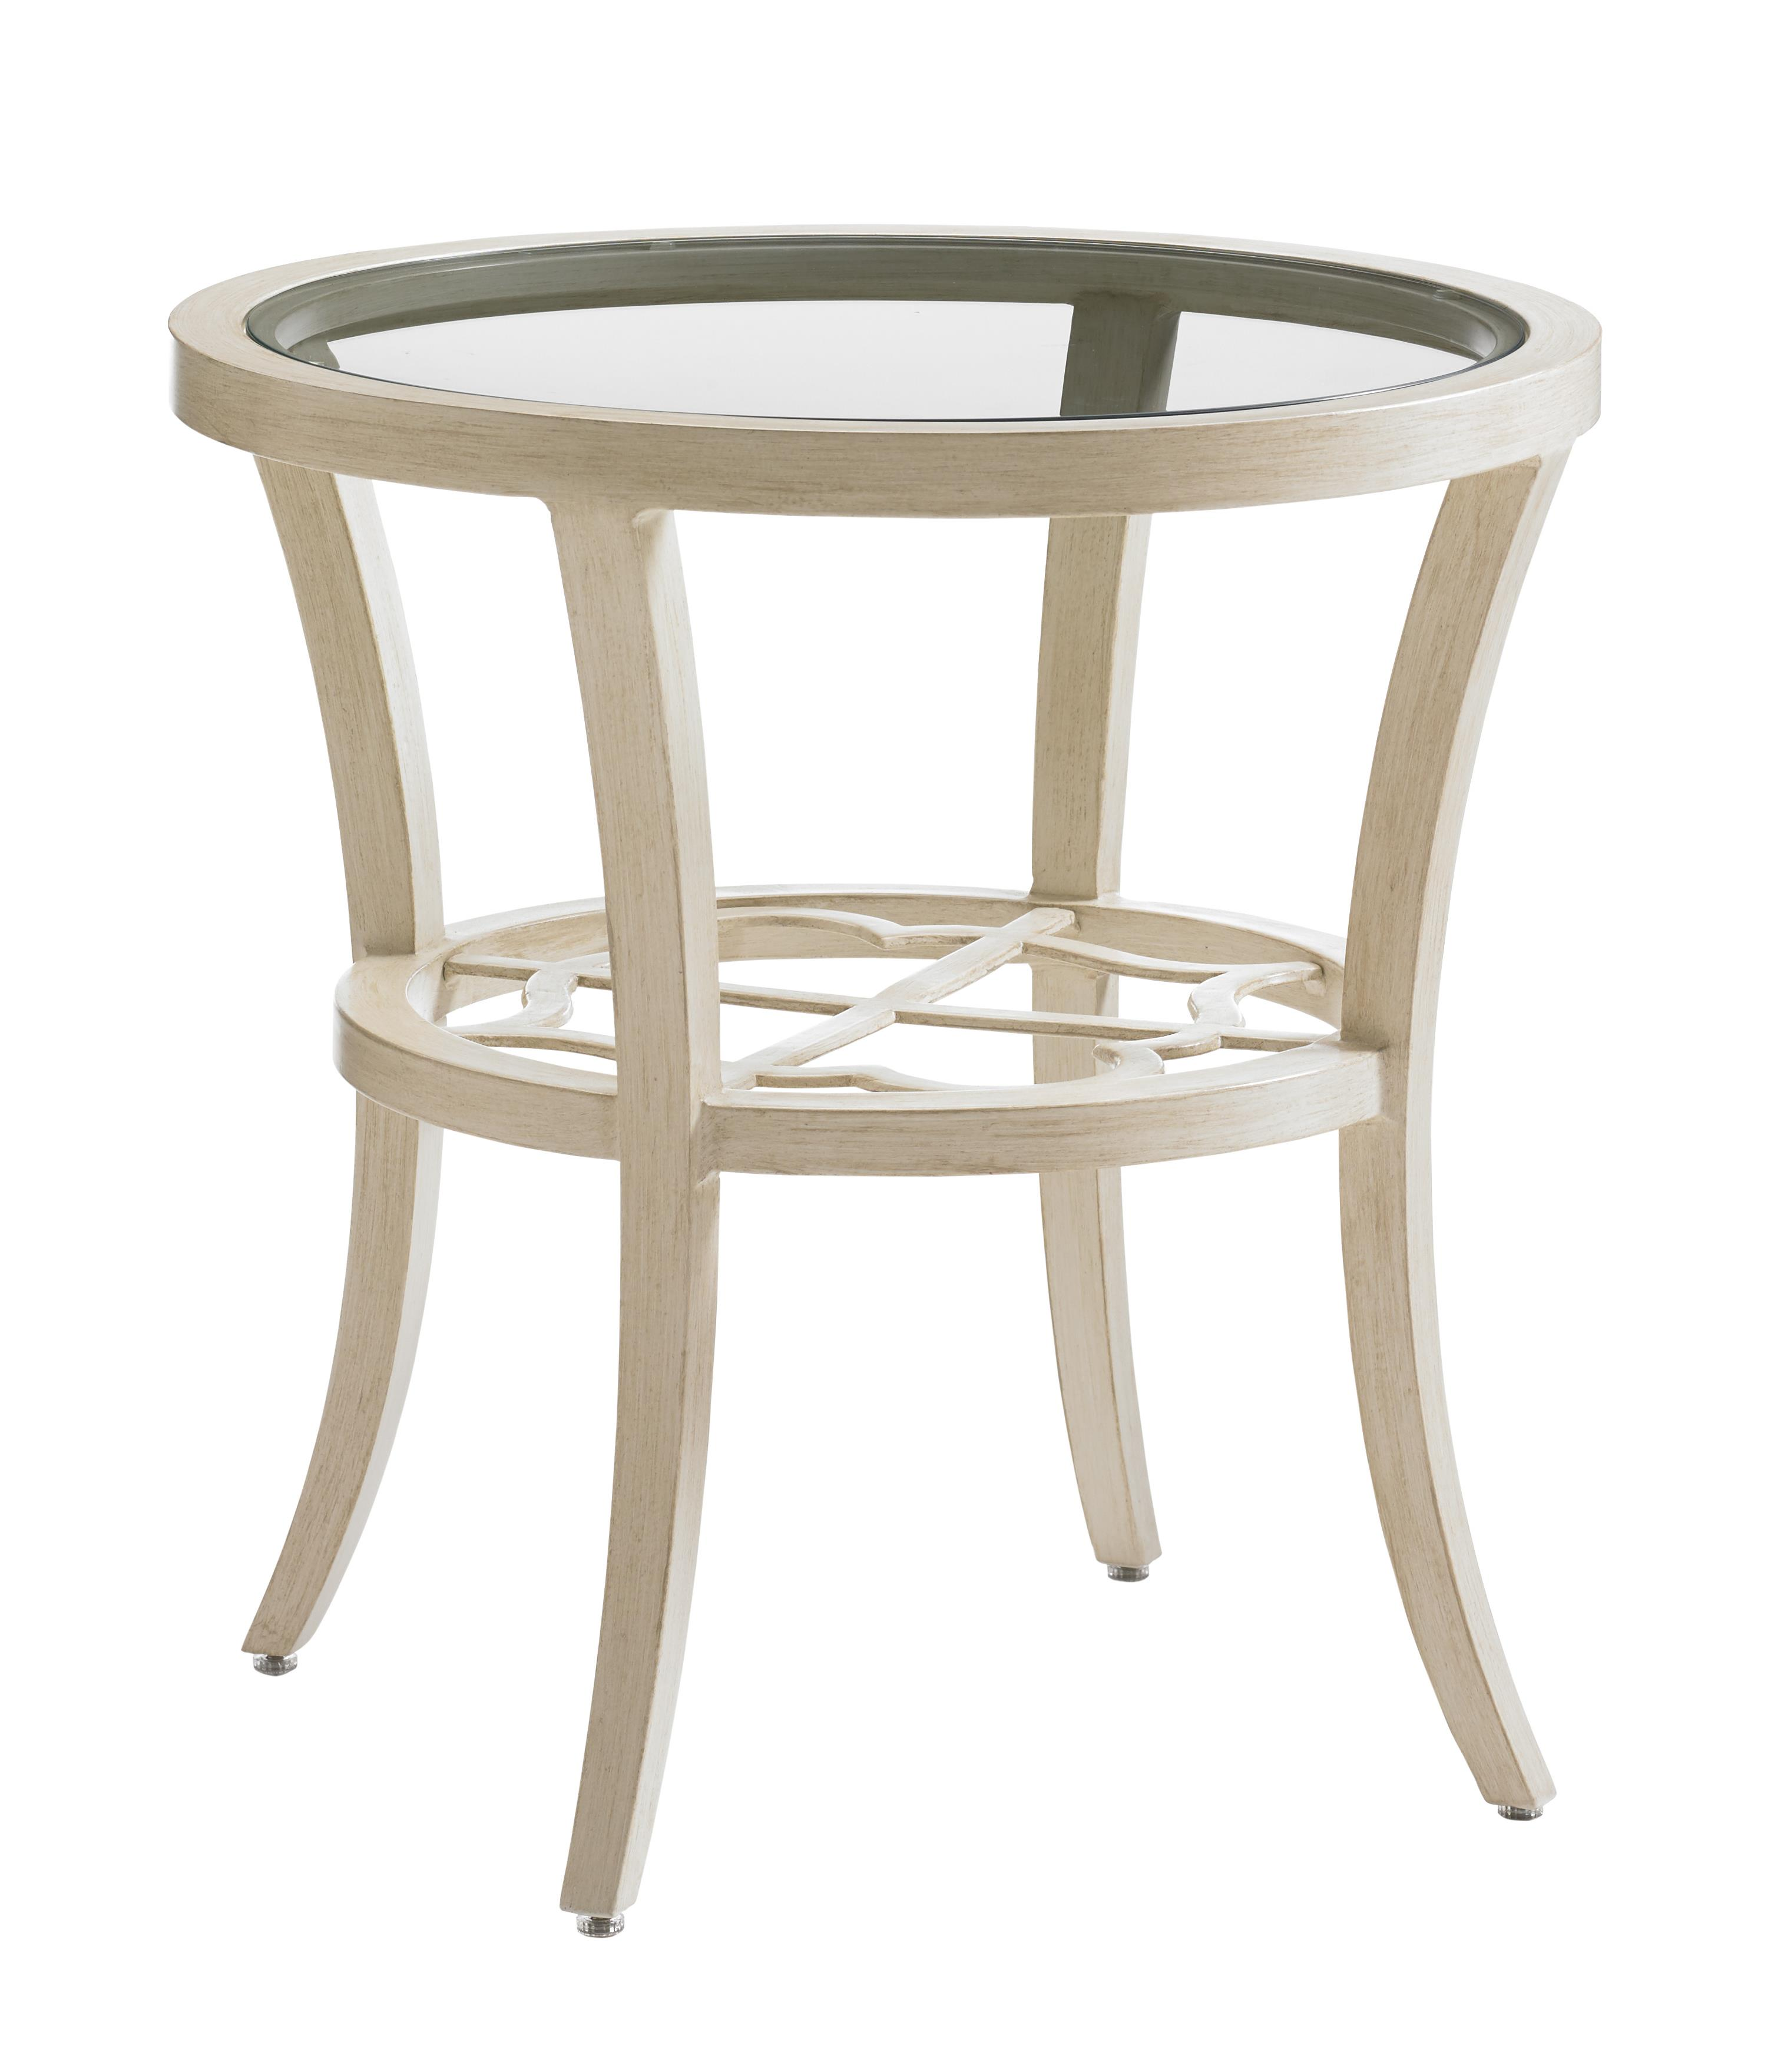 Misty Garden Round End Table with Inset Glass Top by Tommy Bahama Outdoor Living at Baer's Furniture